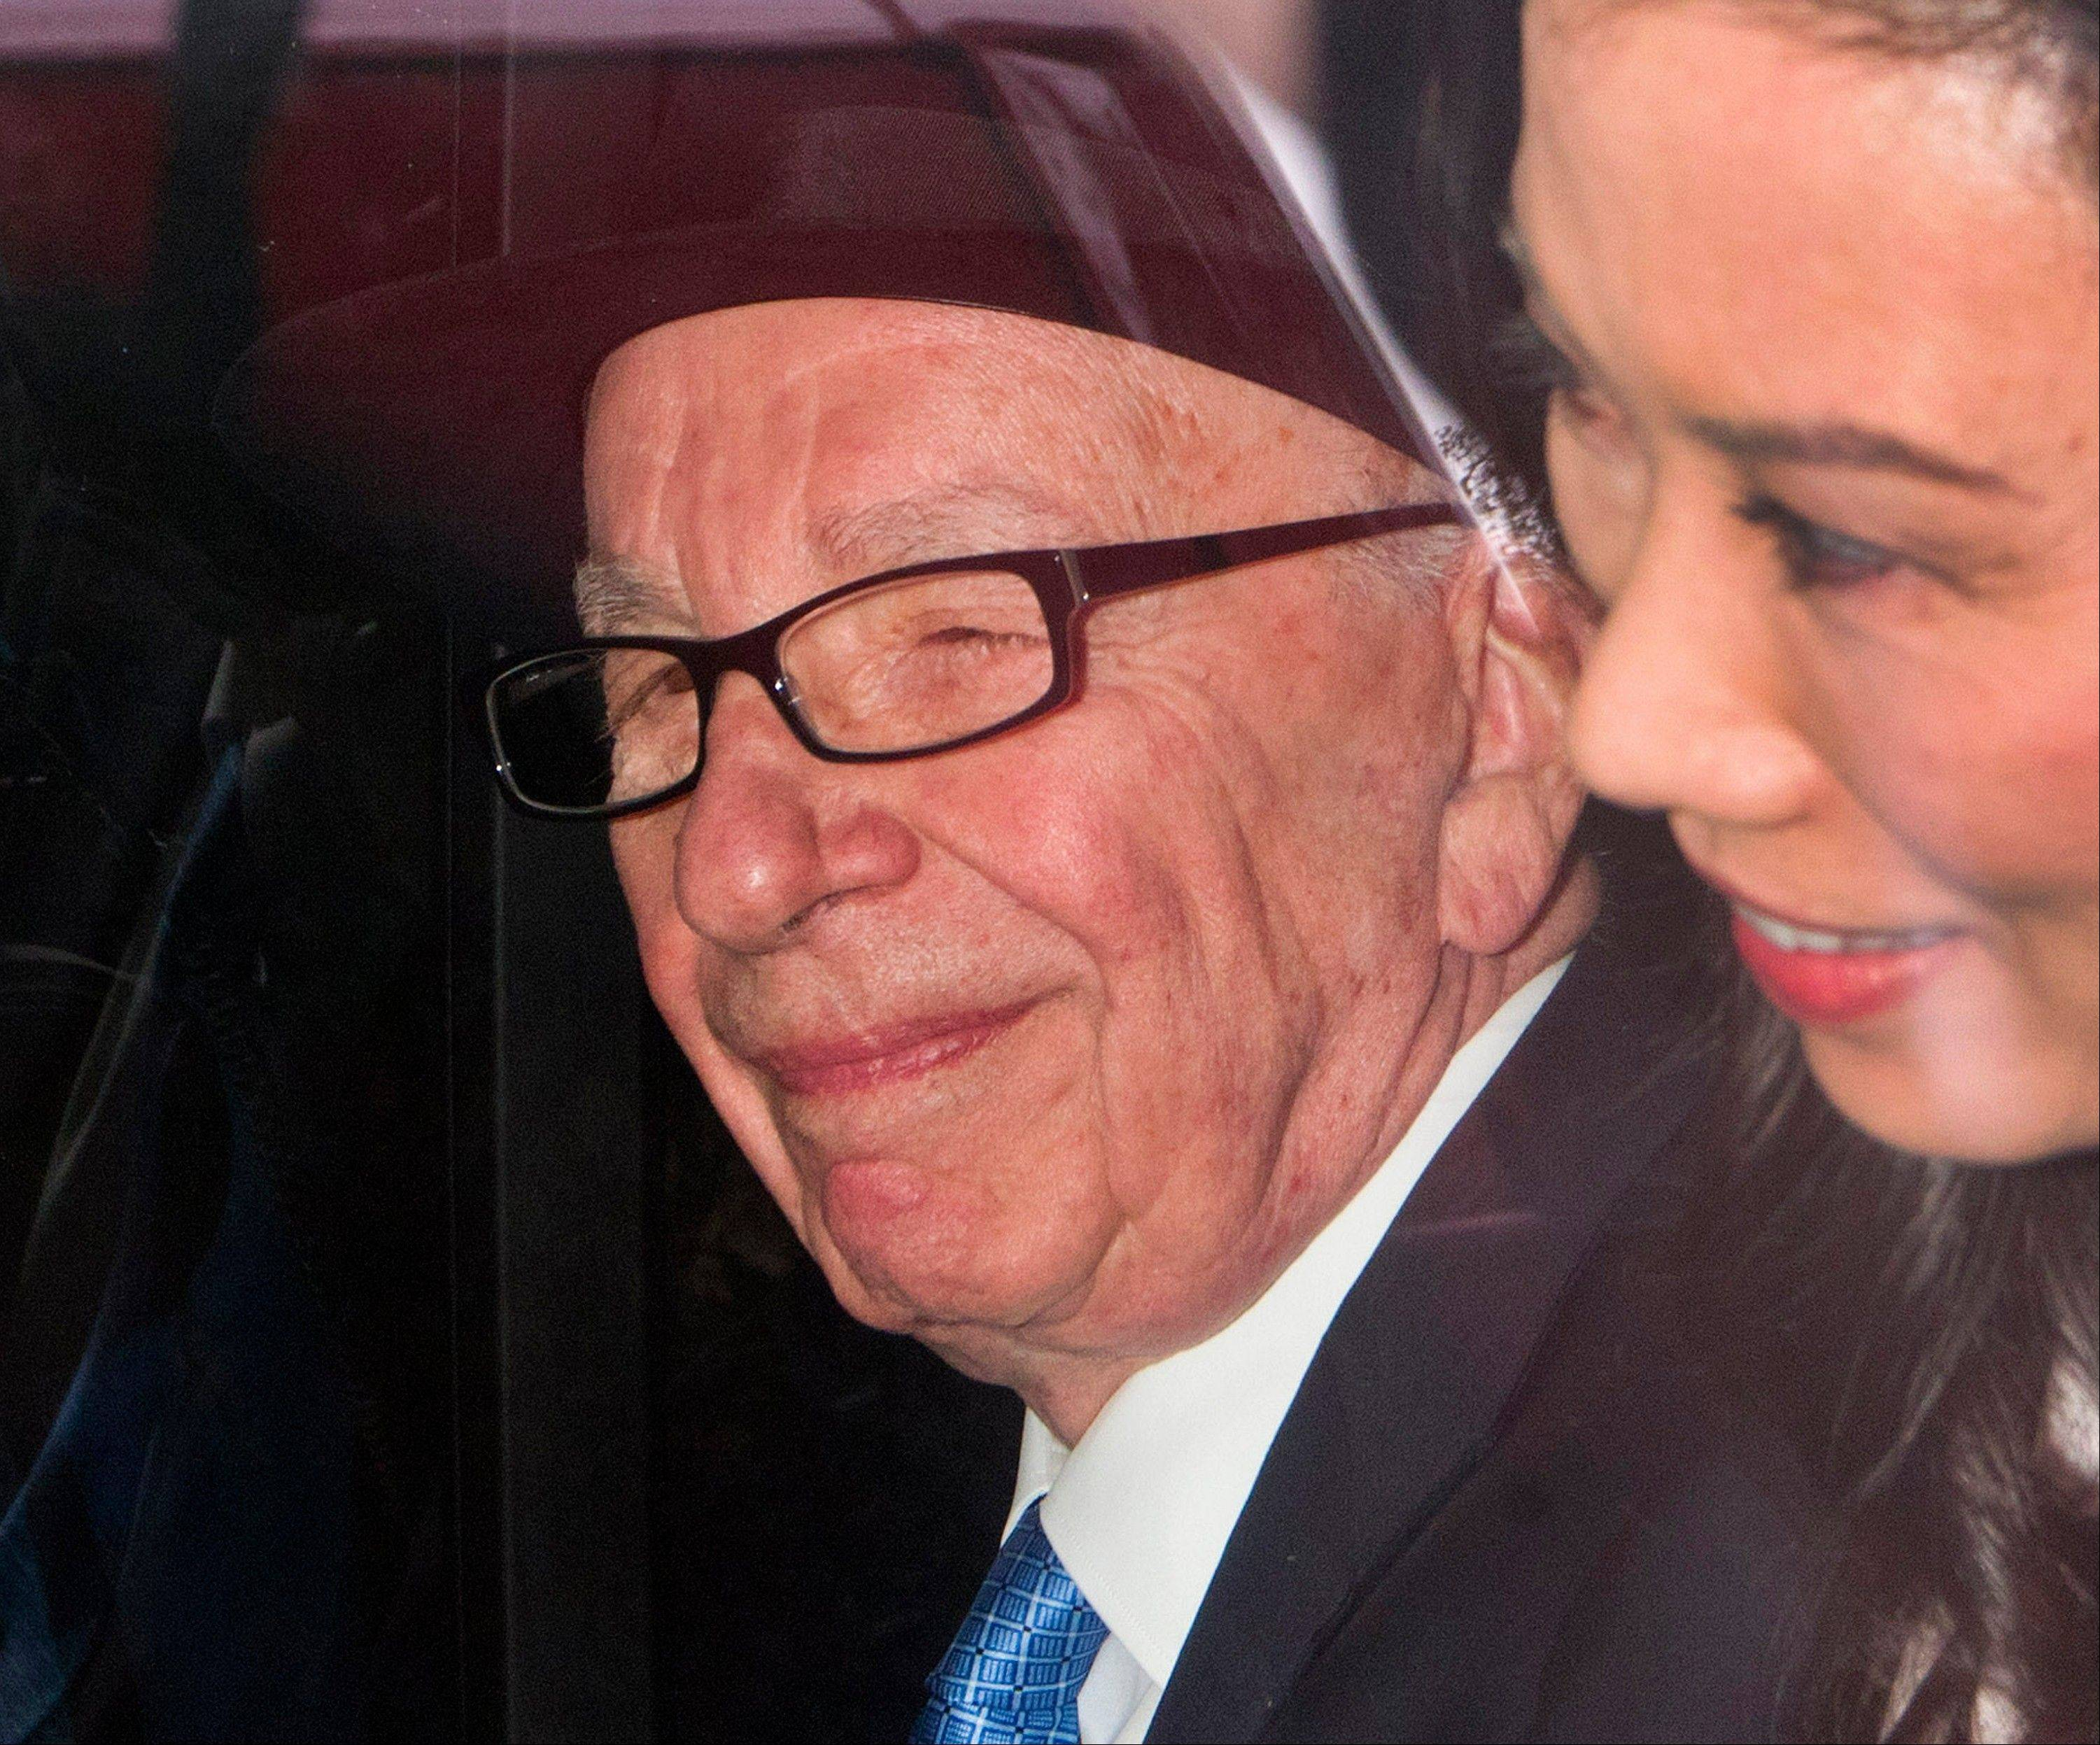 News Corp. chairman Rupert Murdoch and his wife Wendi Deng leave the High Court in London.